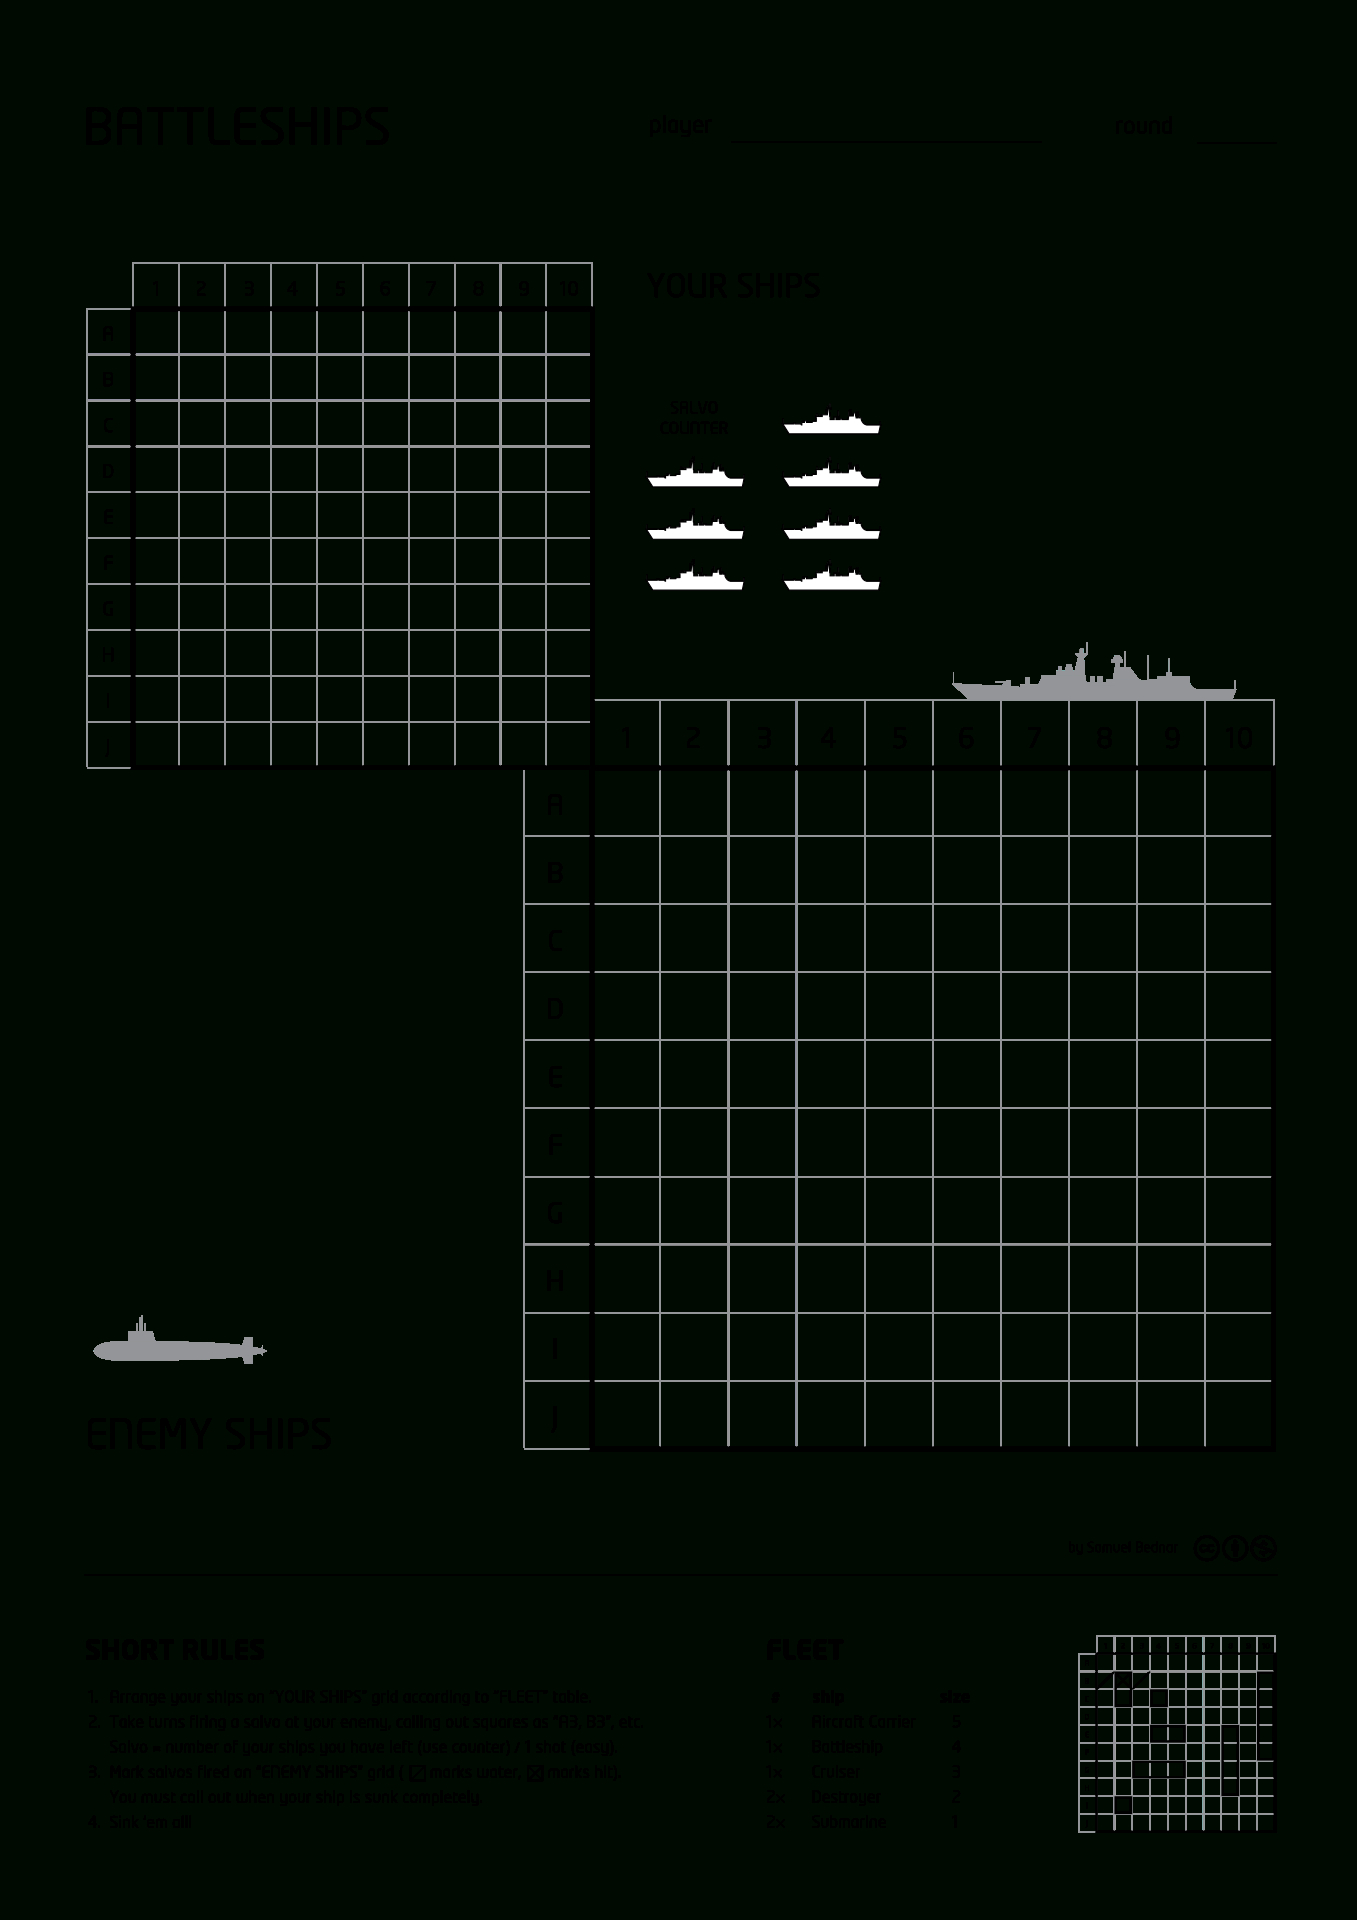 A Typical Pen-And-Paper Version Of The Game, Showing The Large - Free Printable Battleship Game